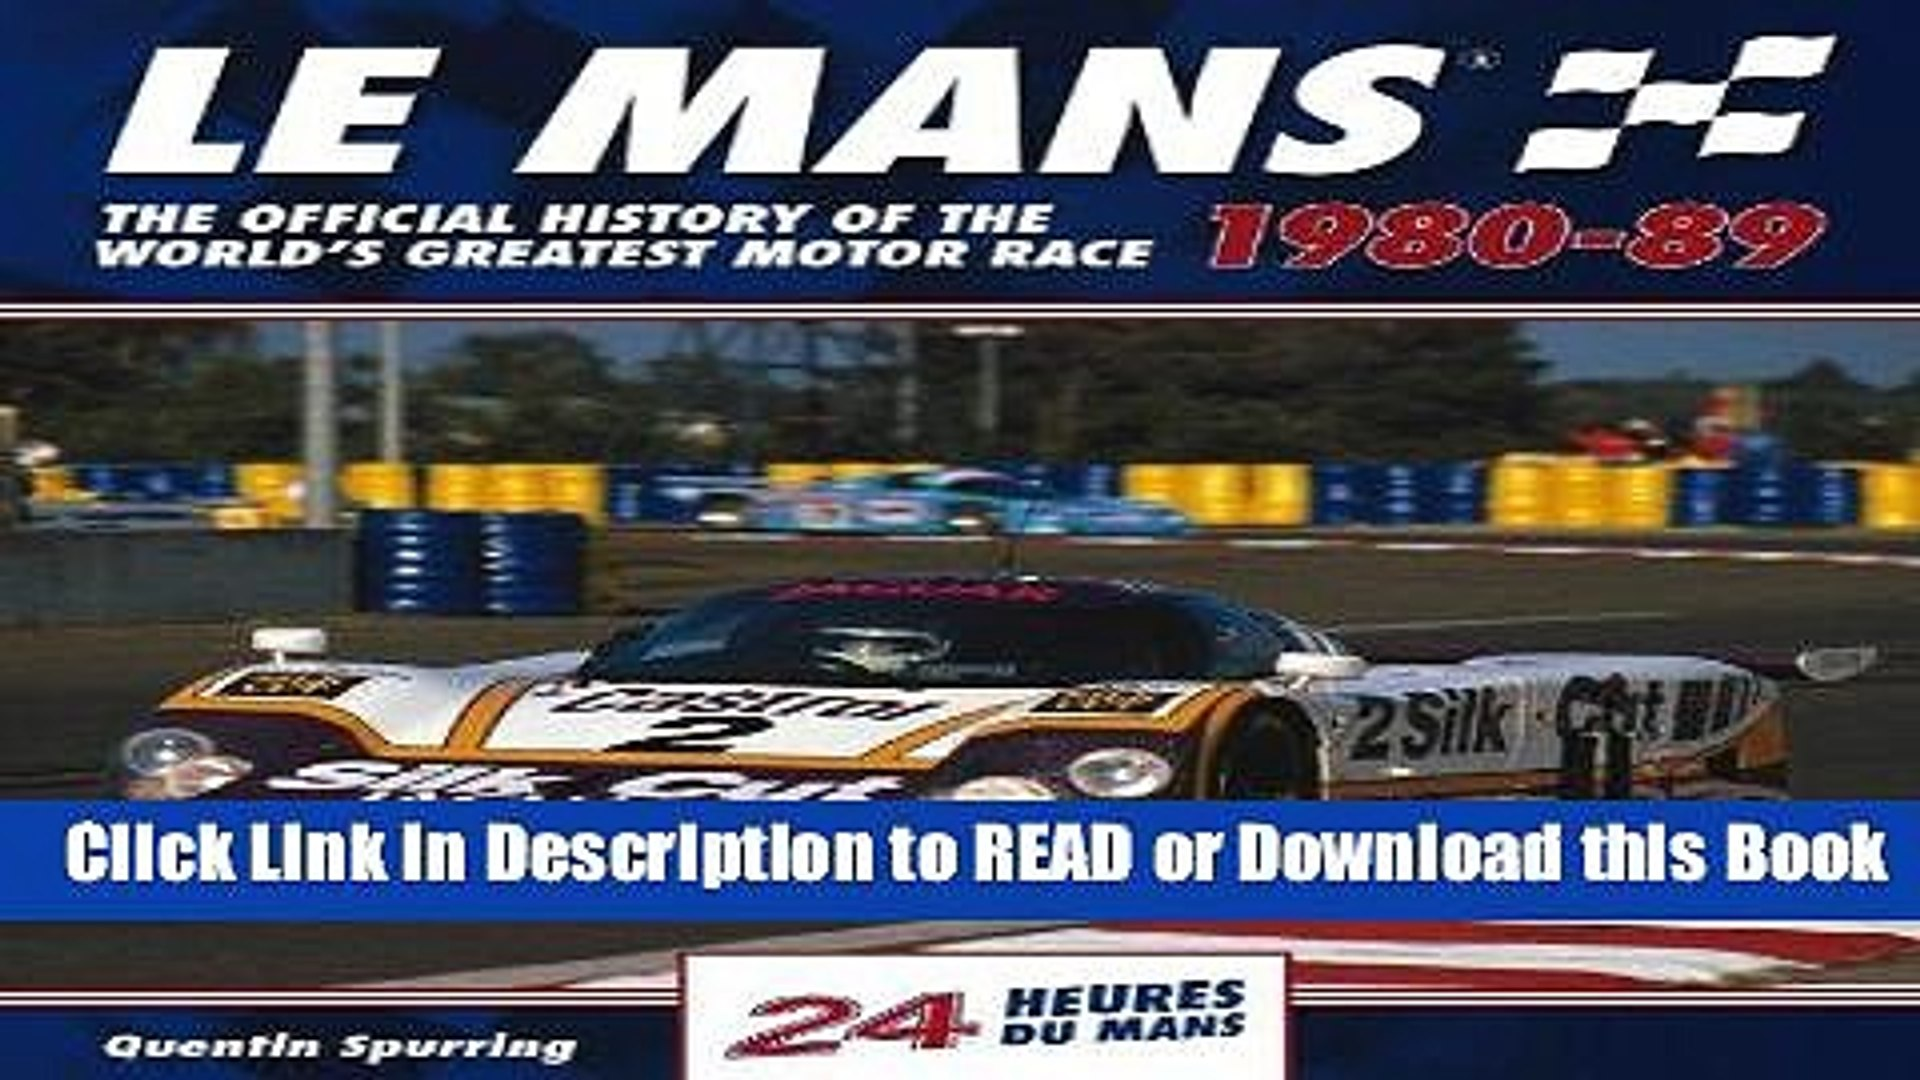 Books Le Mans 24 Hours 1980-89: The Official History of the World s Greatest Motor Race 1980-89